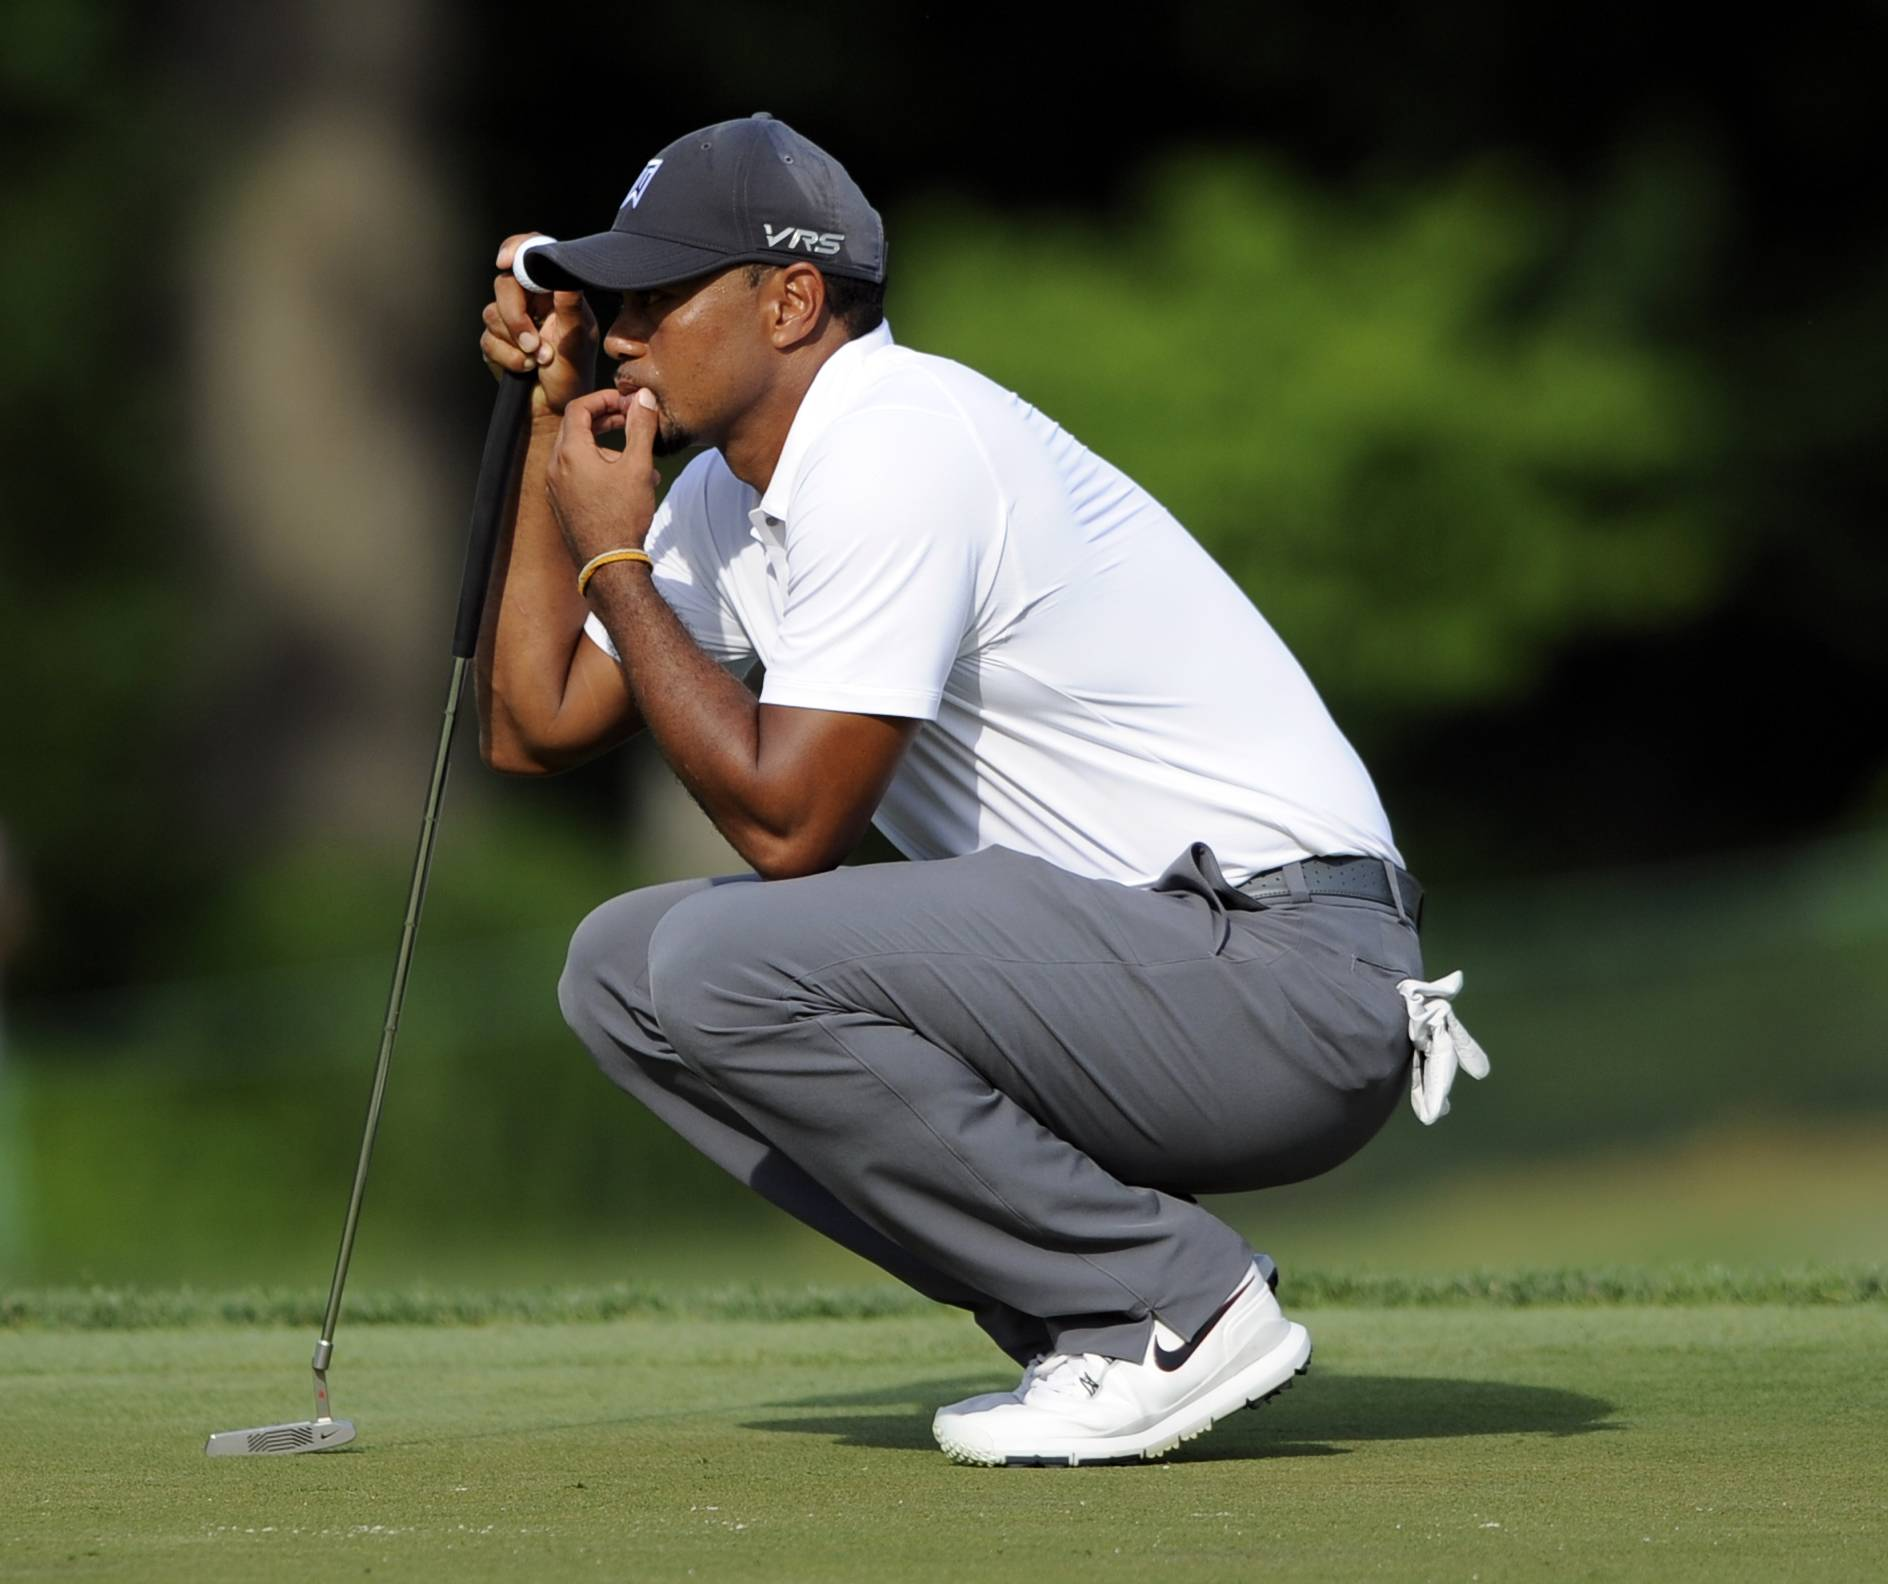 Tiger Woods didn't last more than 36 holes in his return to competition. Woods showed plenty of rust with his short game when he ran off four straight bogeys on the back nine Friday at Congressional to end any hopes of sticking around for the weekend at the Quicken Loans National.